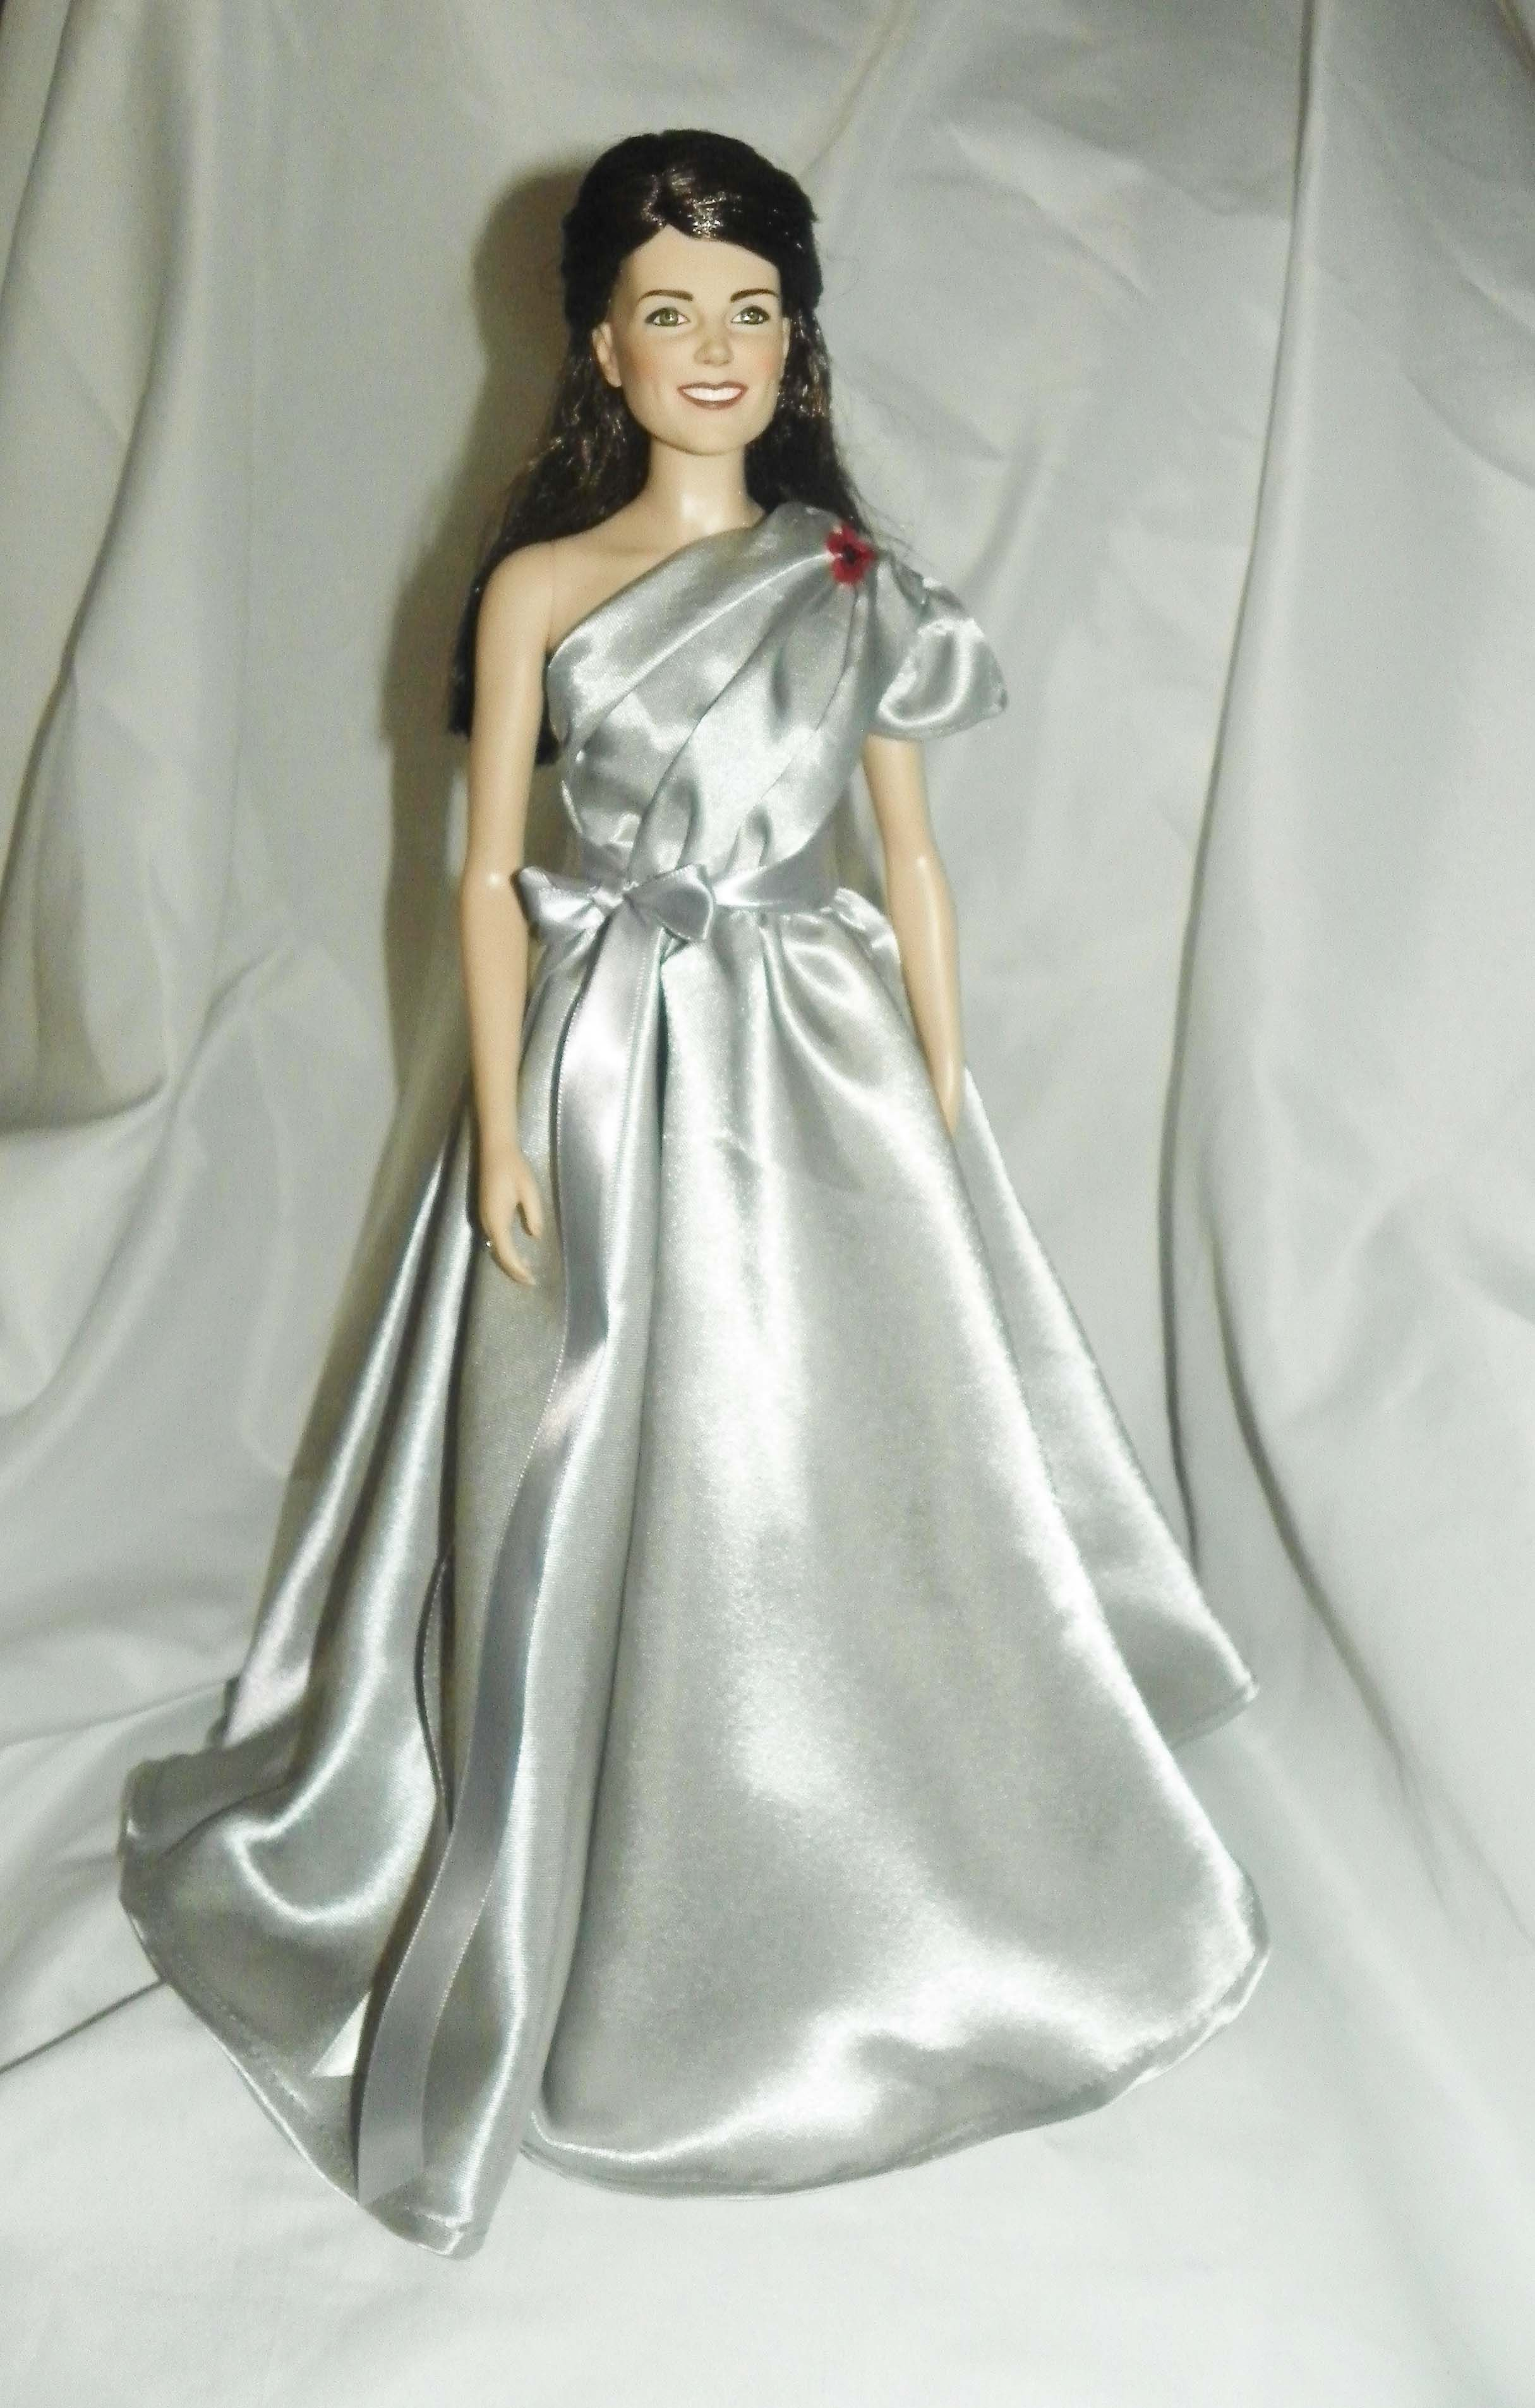 Silver one shoulder gown worn 2012? Another favorite